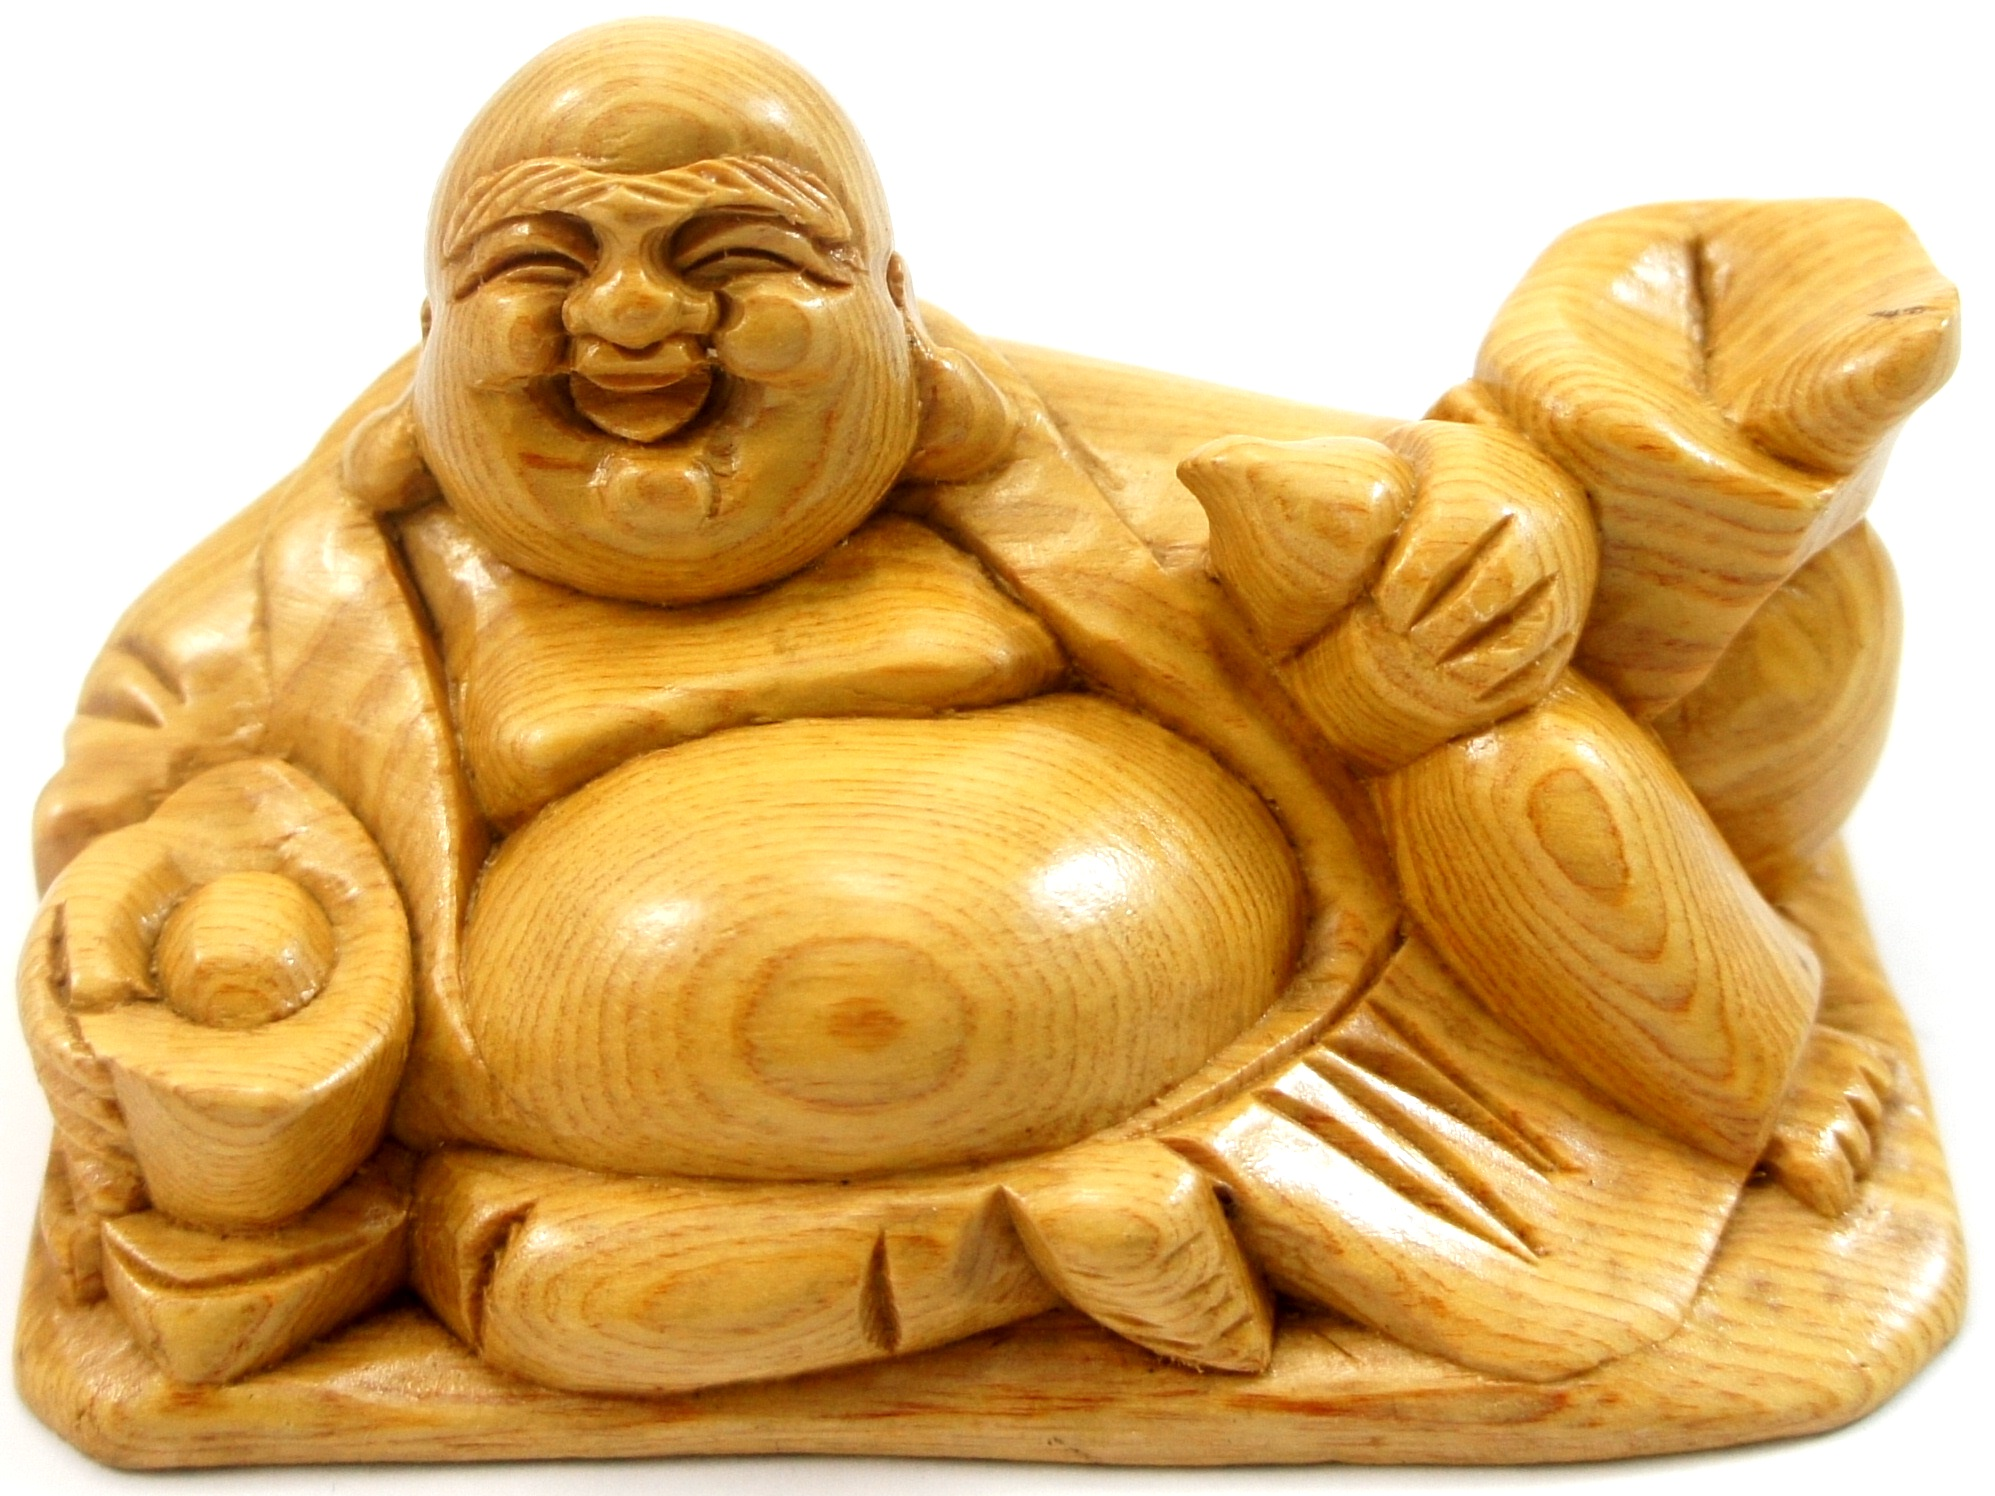 Laughing Buddha Statues And Their Meanings Laughing Buddha Statues Depict